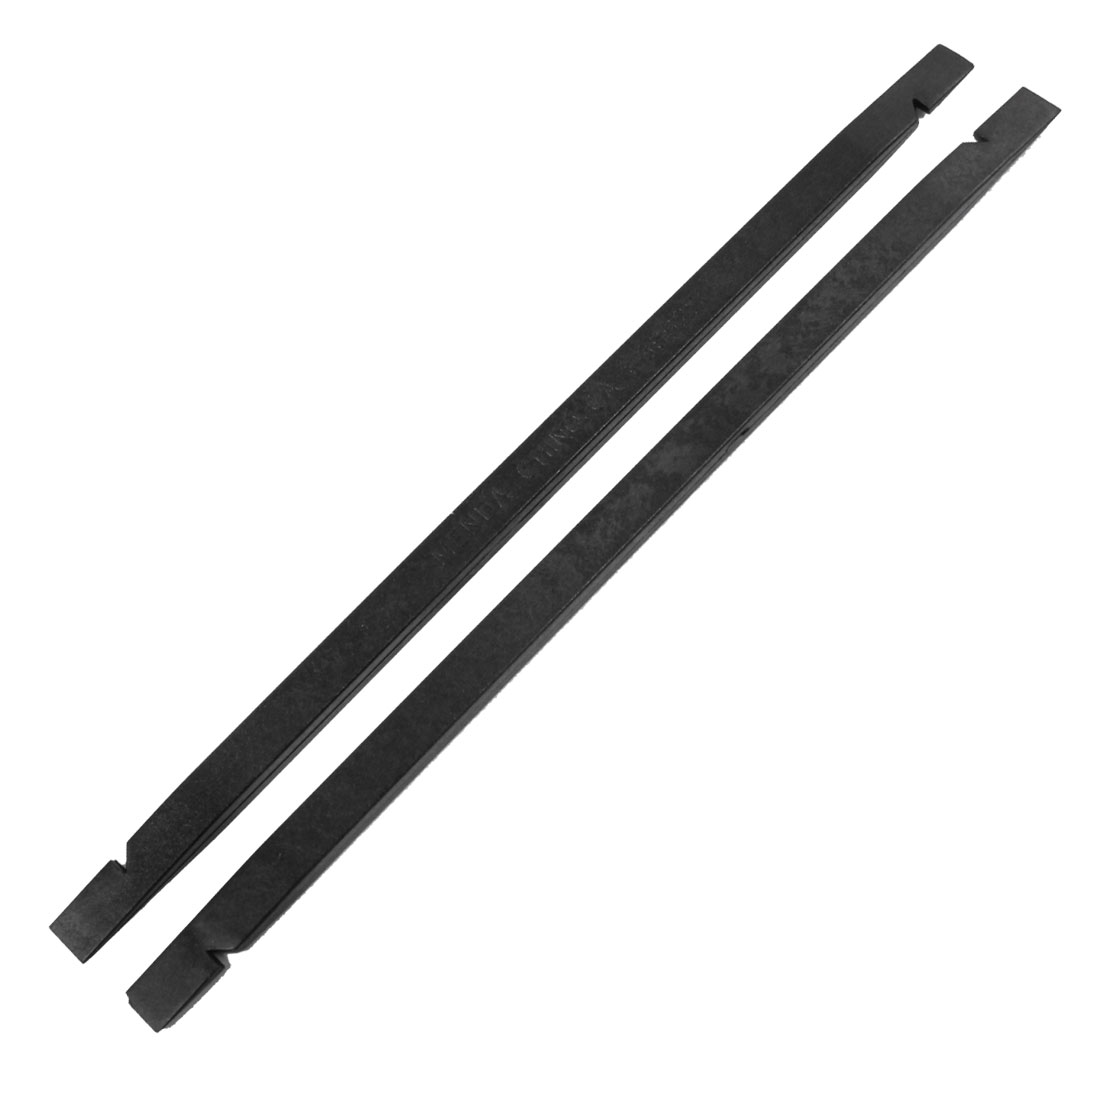 2Pcs Black Plastic Antistatic Stick Opening Repair Tool for Cell Phone